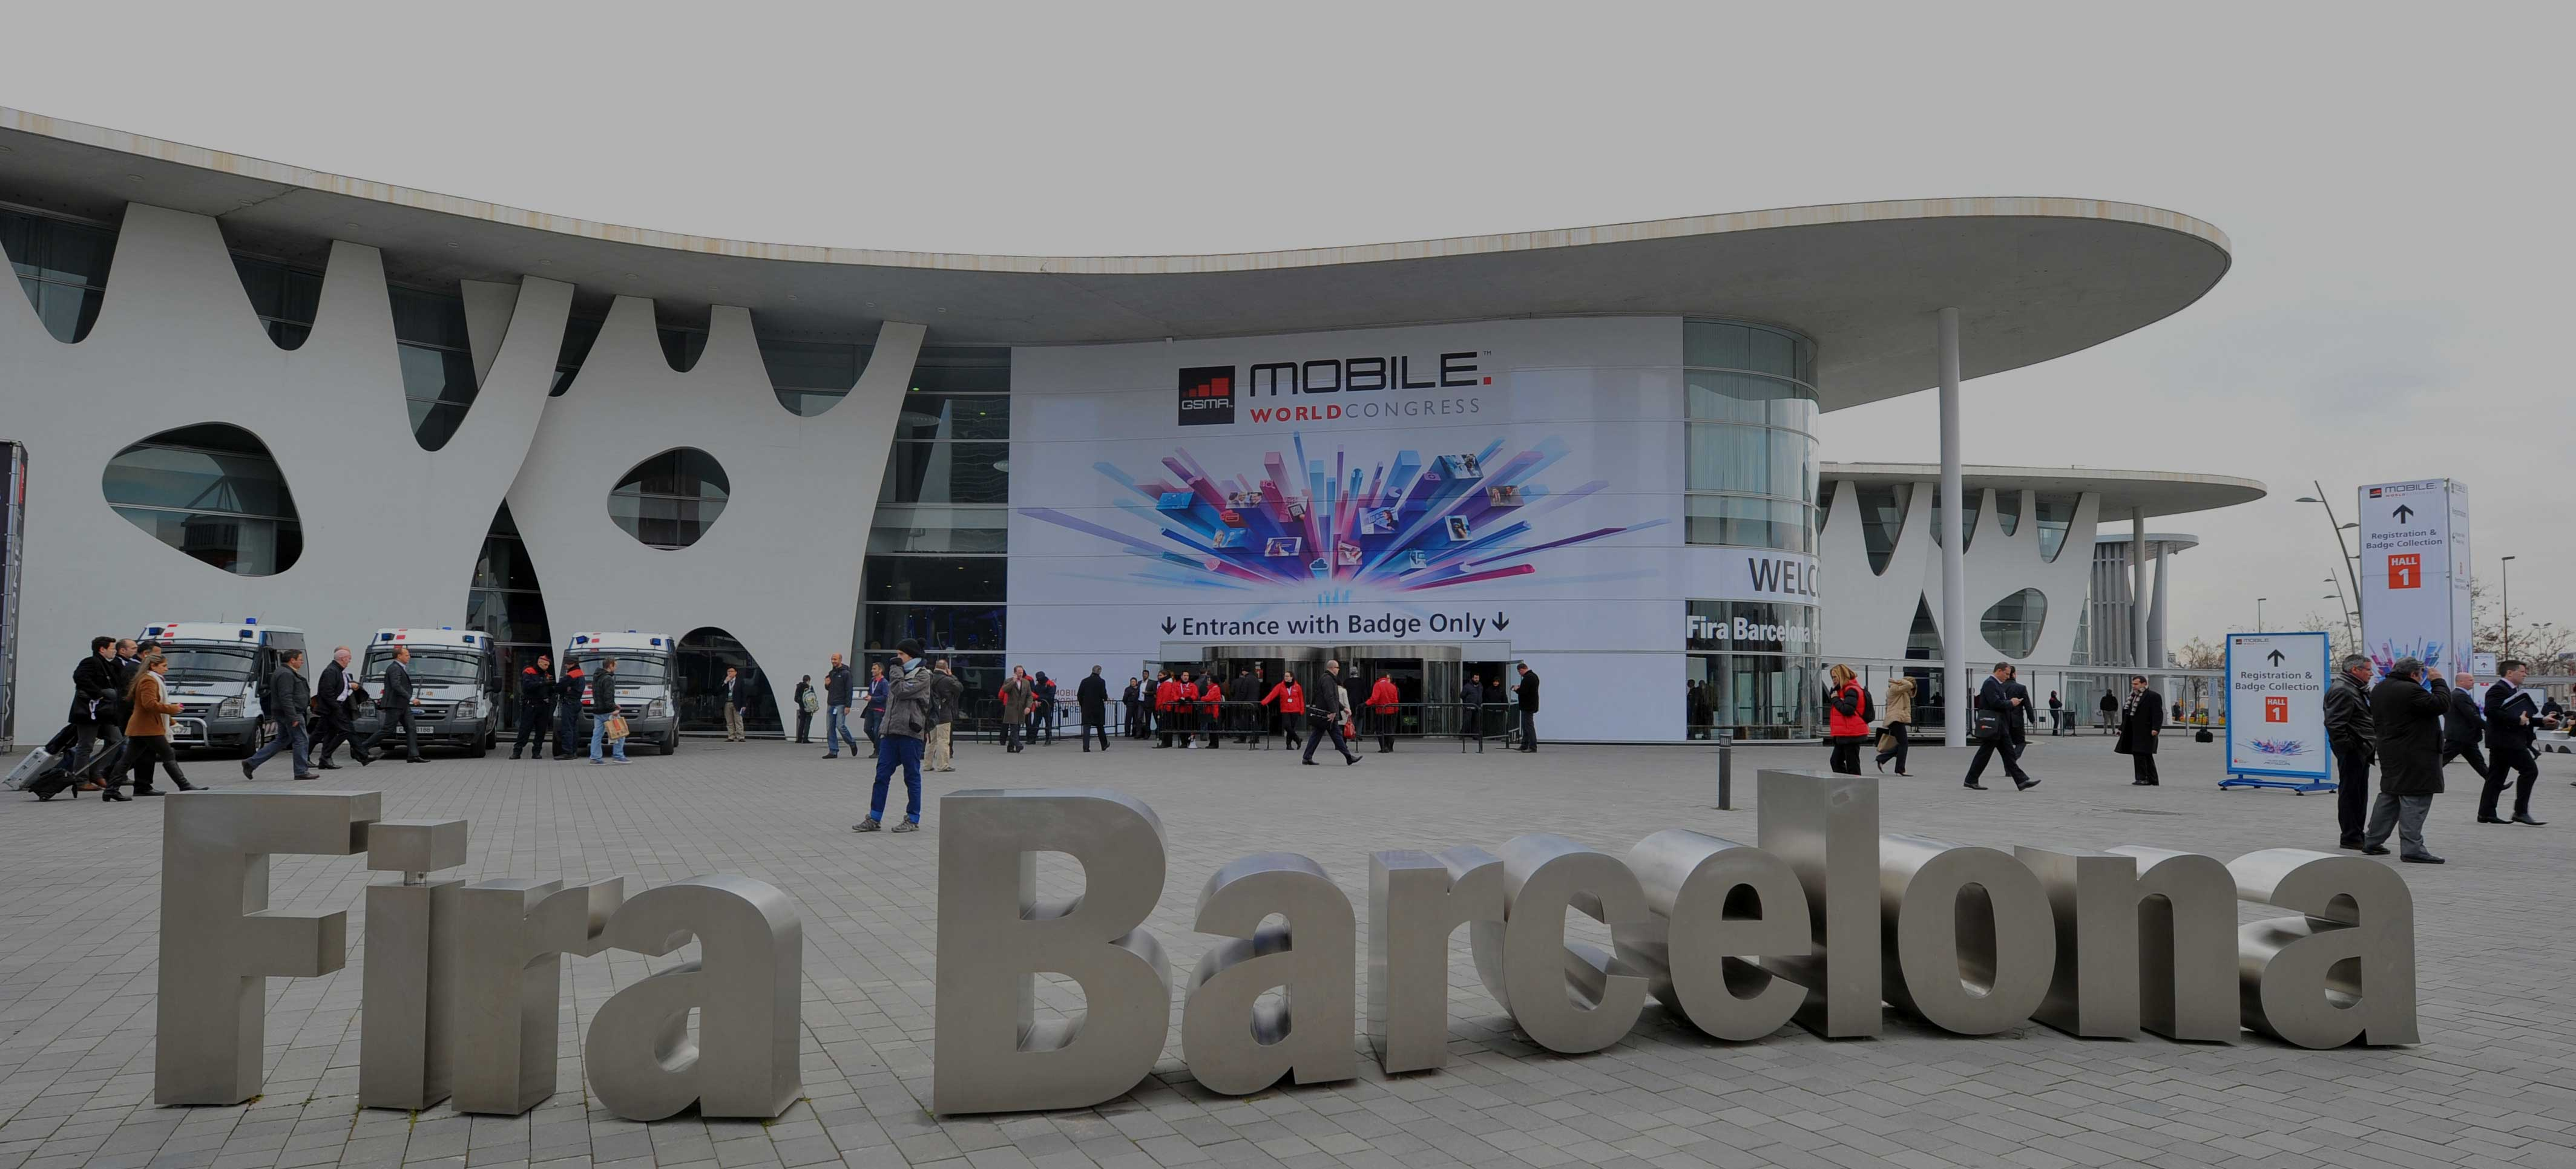 Mobile-World-Congress-Fira-Barcelona-2015